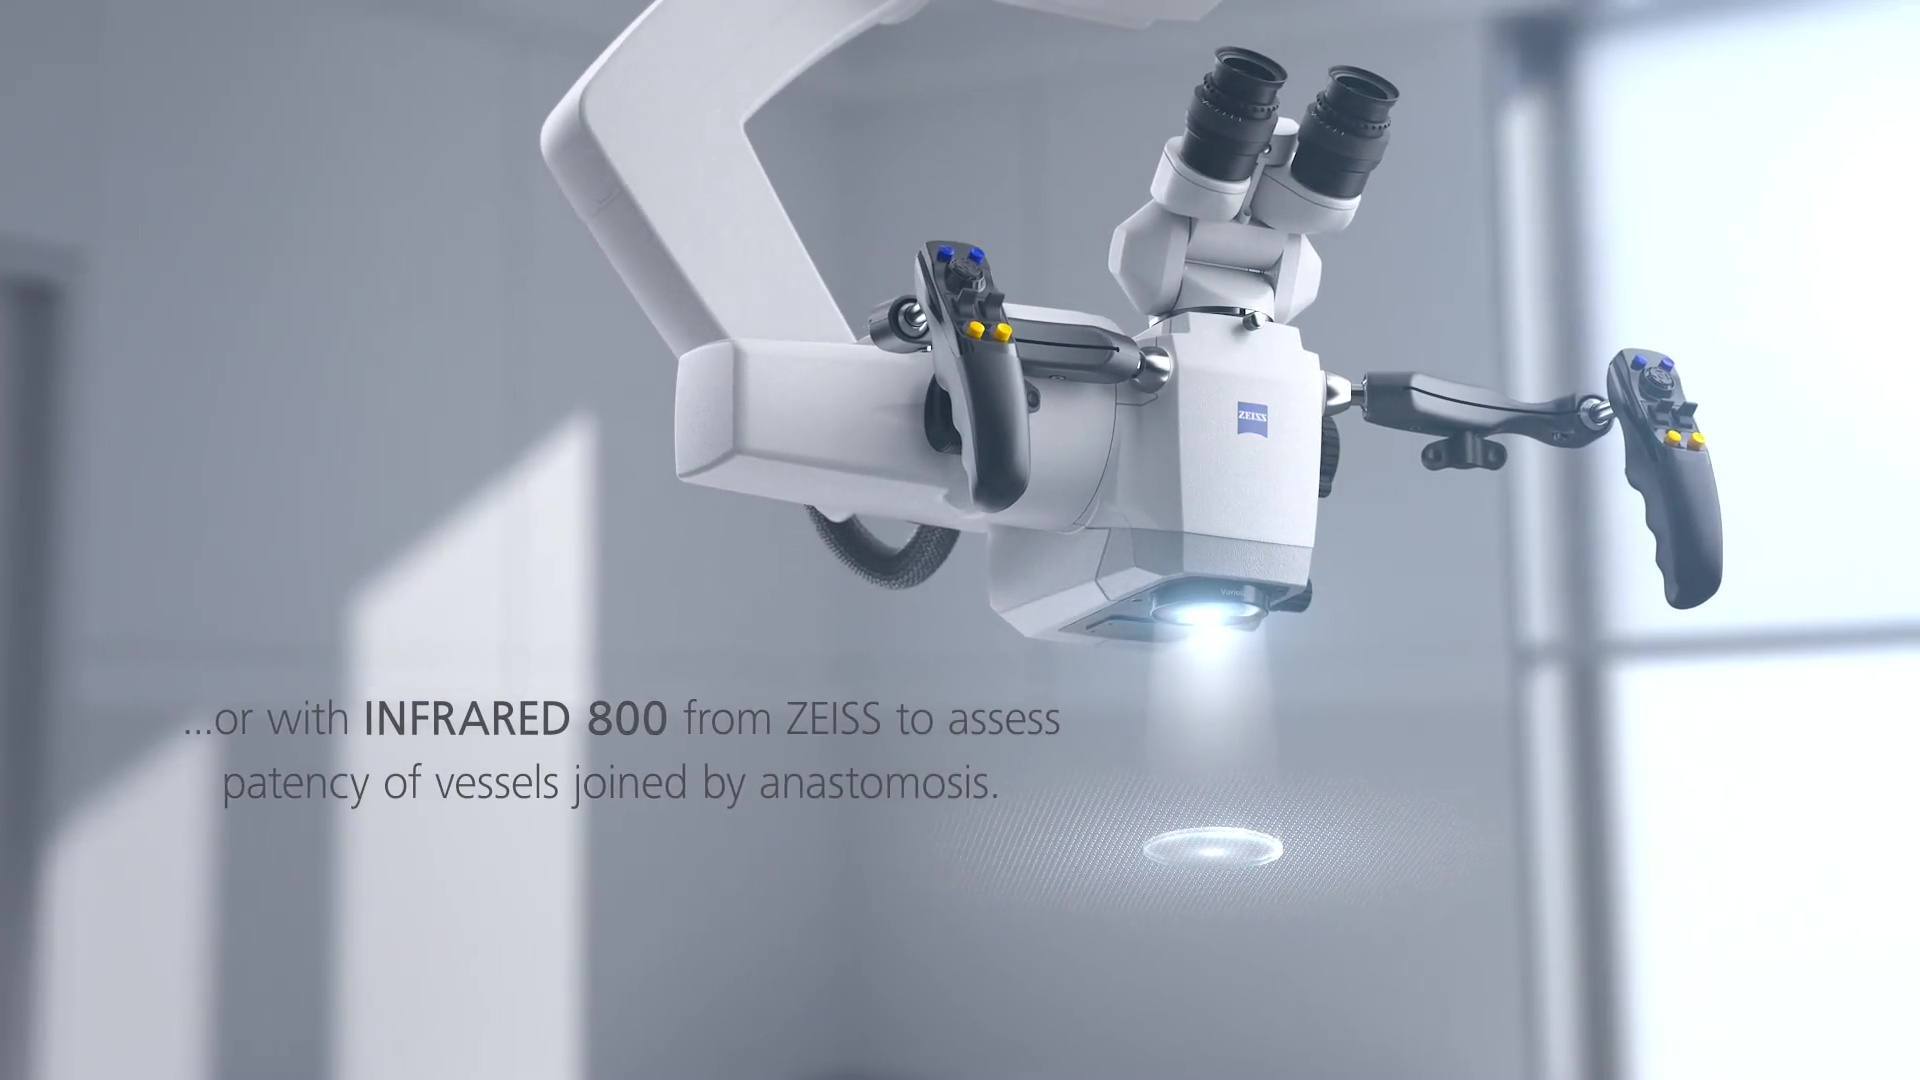 TIVATO 700 – Surgical Microscopes / Visualization System